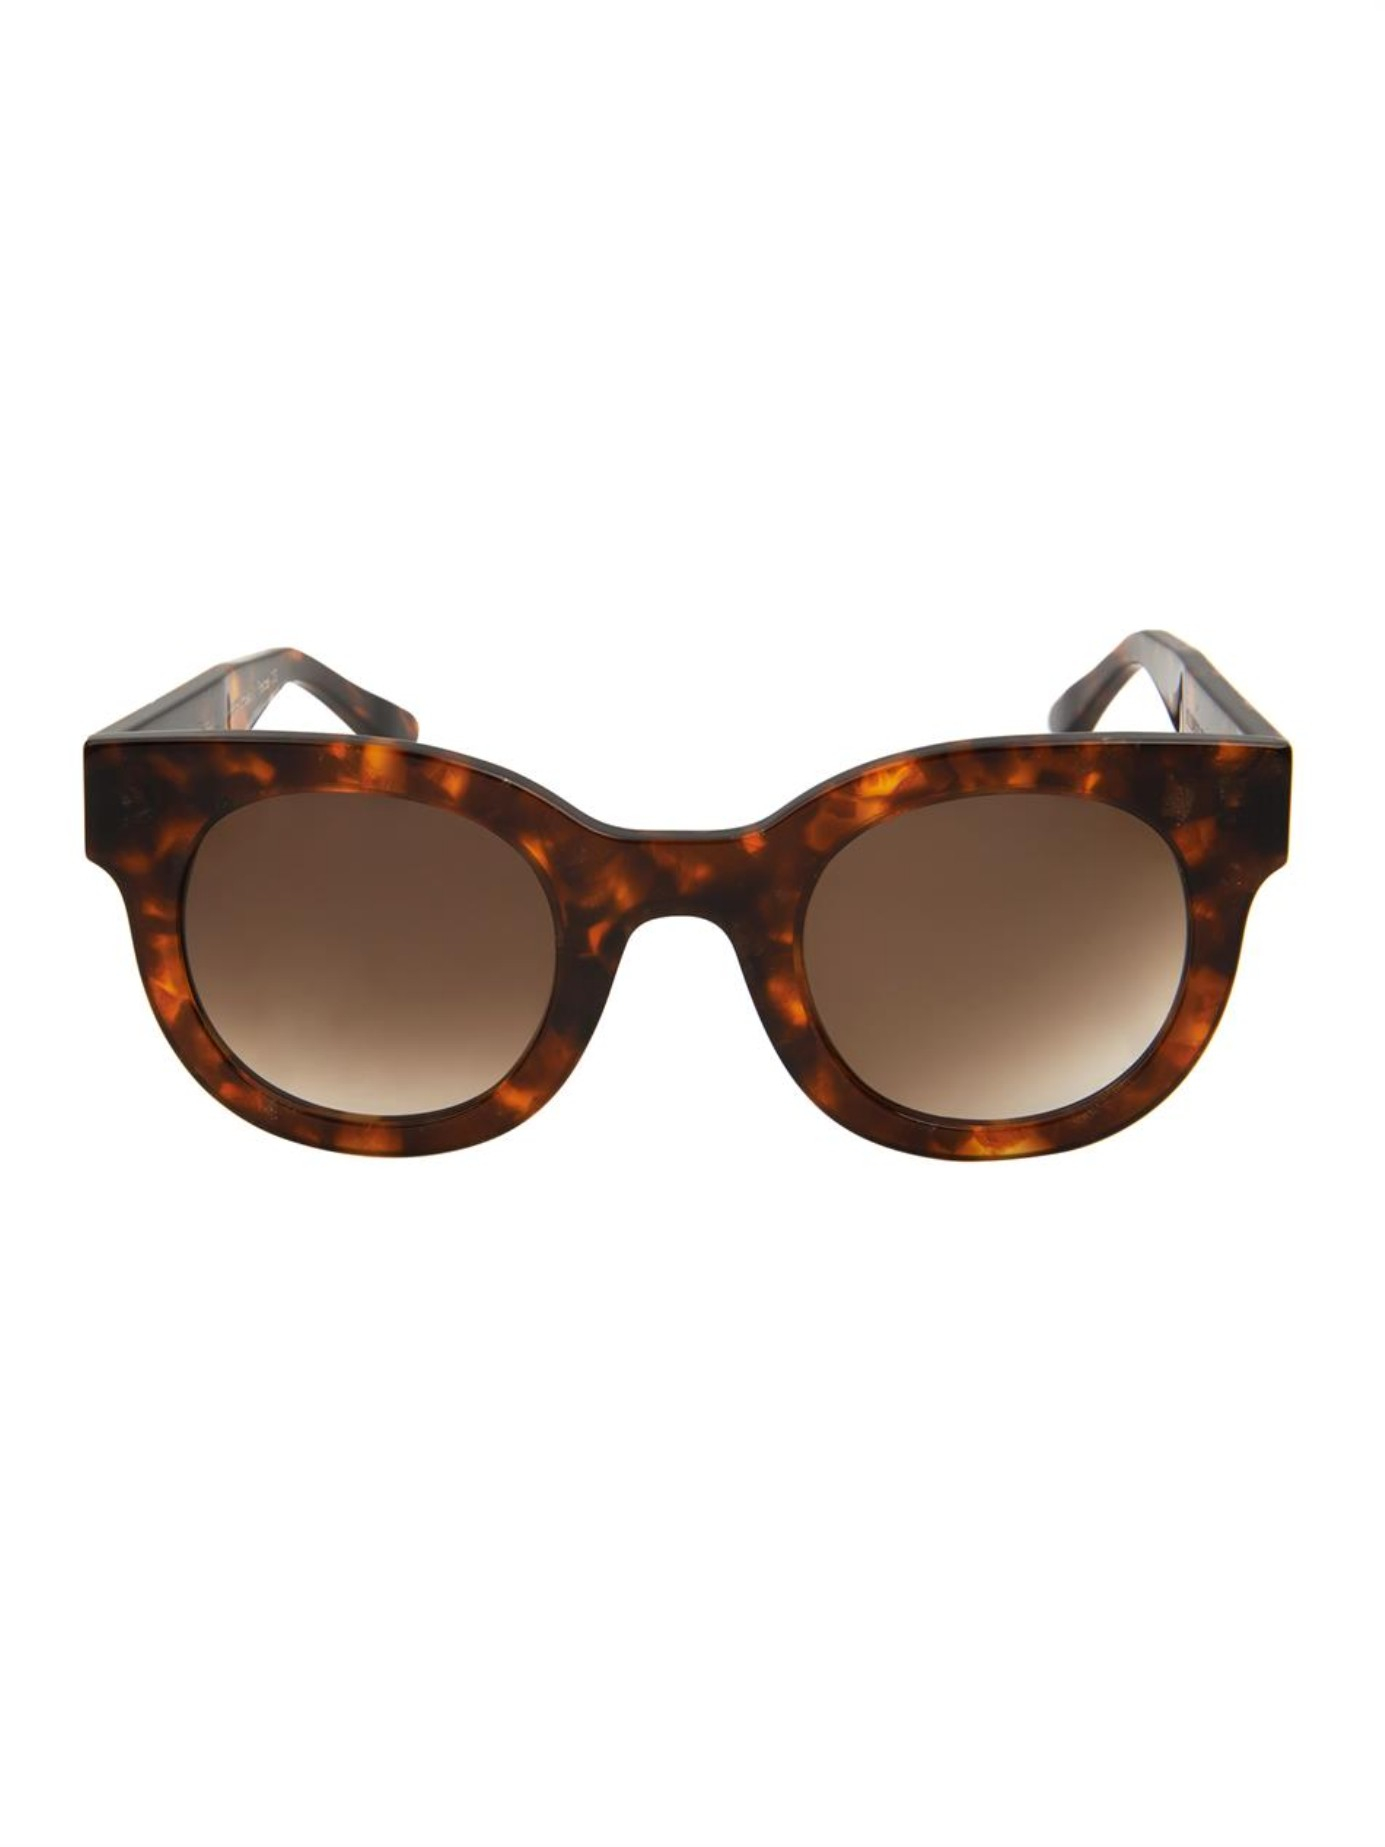 152ffb2858d Thierry Lasry Celebrity Round-Framed Sunglasses in Brown - Lyst